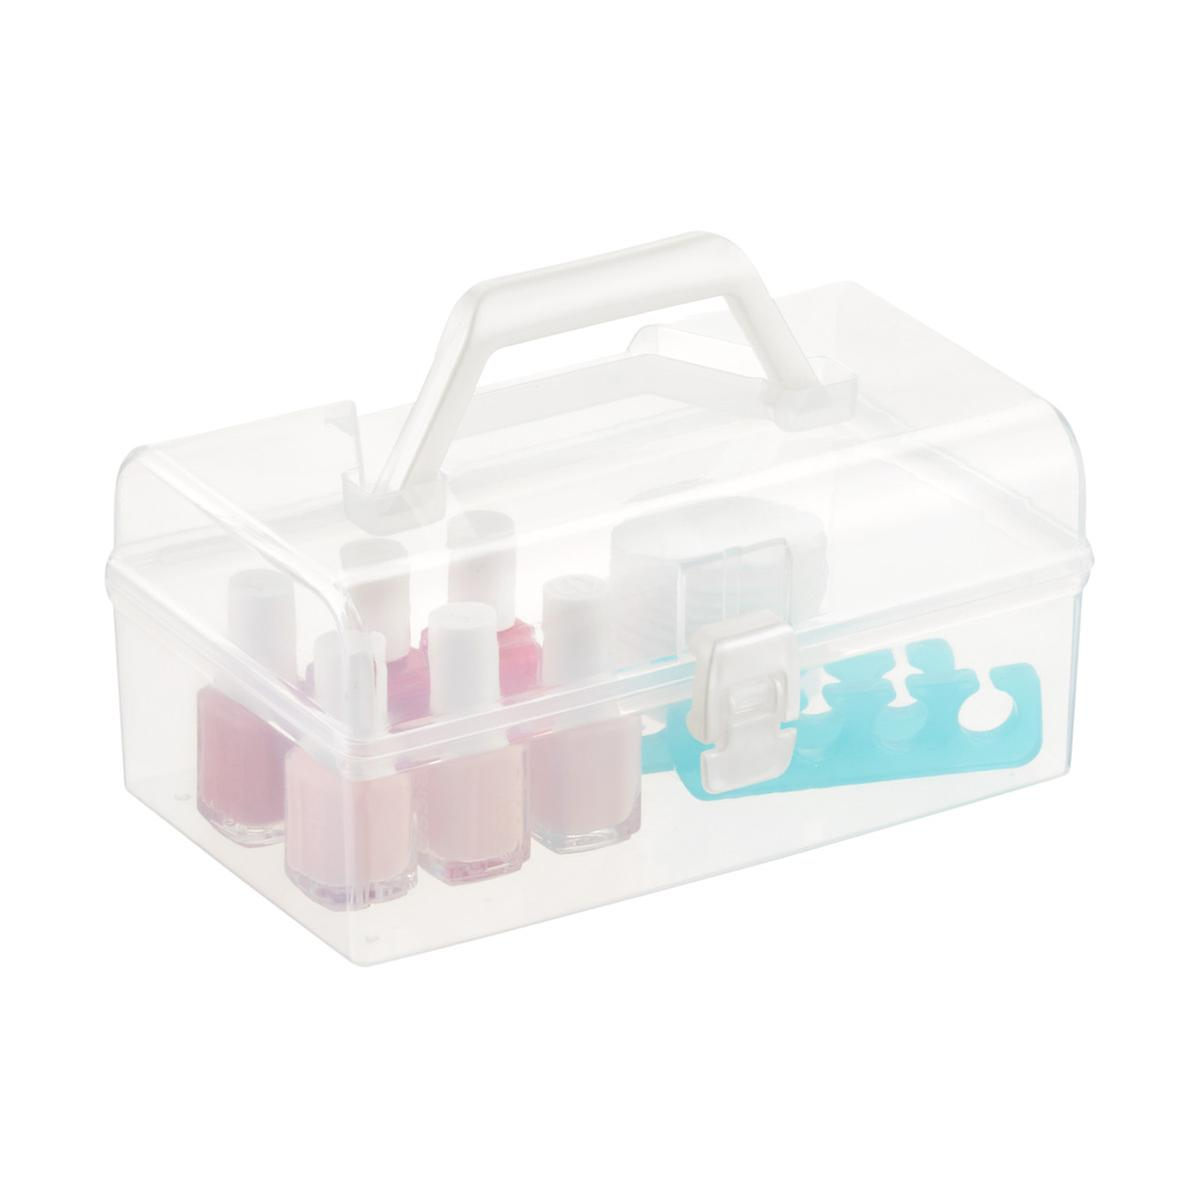 Standard Handy Box | The Container Store